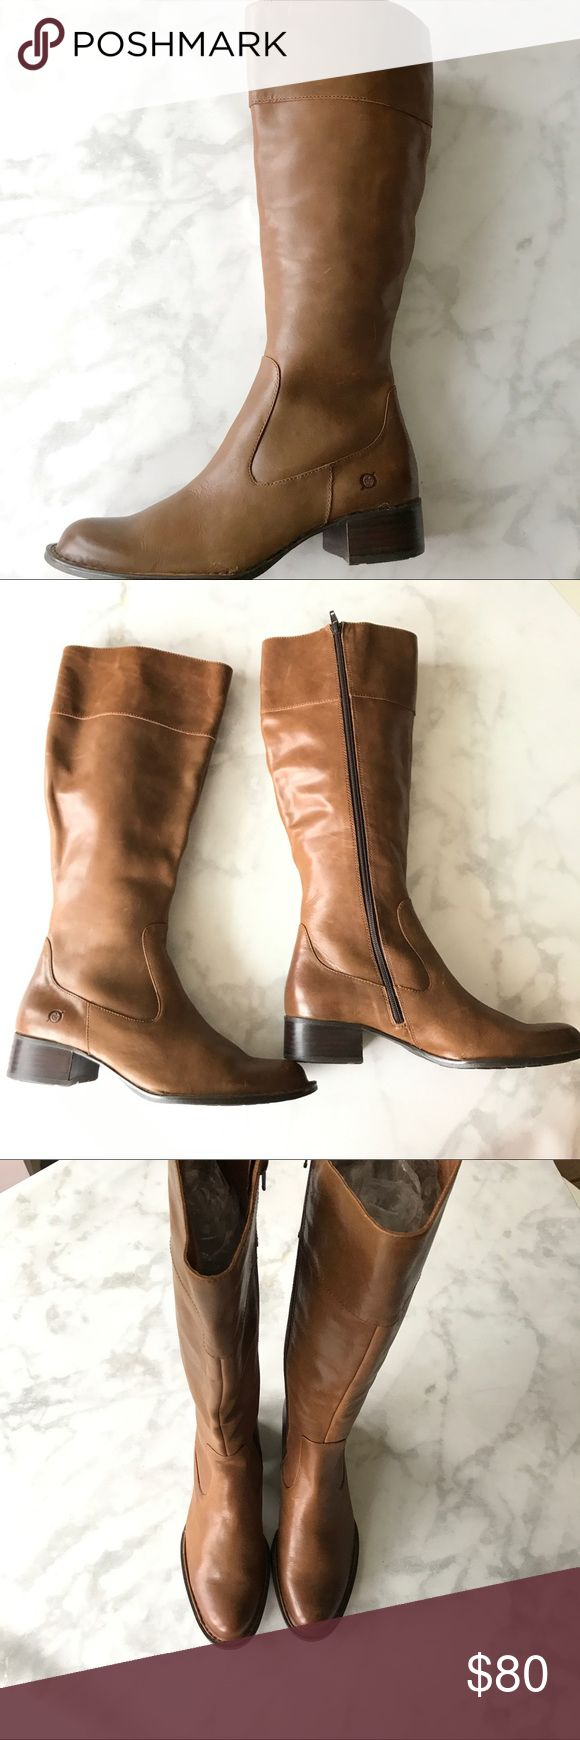 NWOB Born brown tall leather boots size 9.5 New without box Born boots. Up to the knee. Beautiful caramel brown boots. Zipper on the inside. Size 9.5. Reasonable offers welcome please no trades or off site selling. Thank you. Born Shoes Heeled Boots